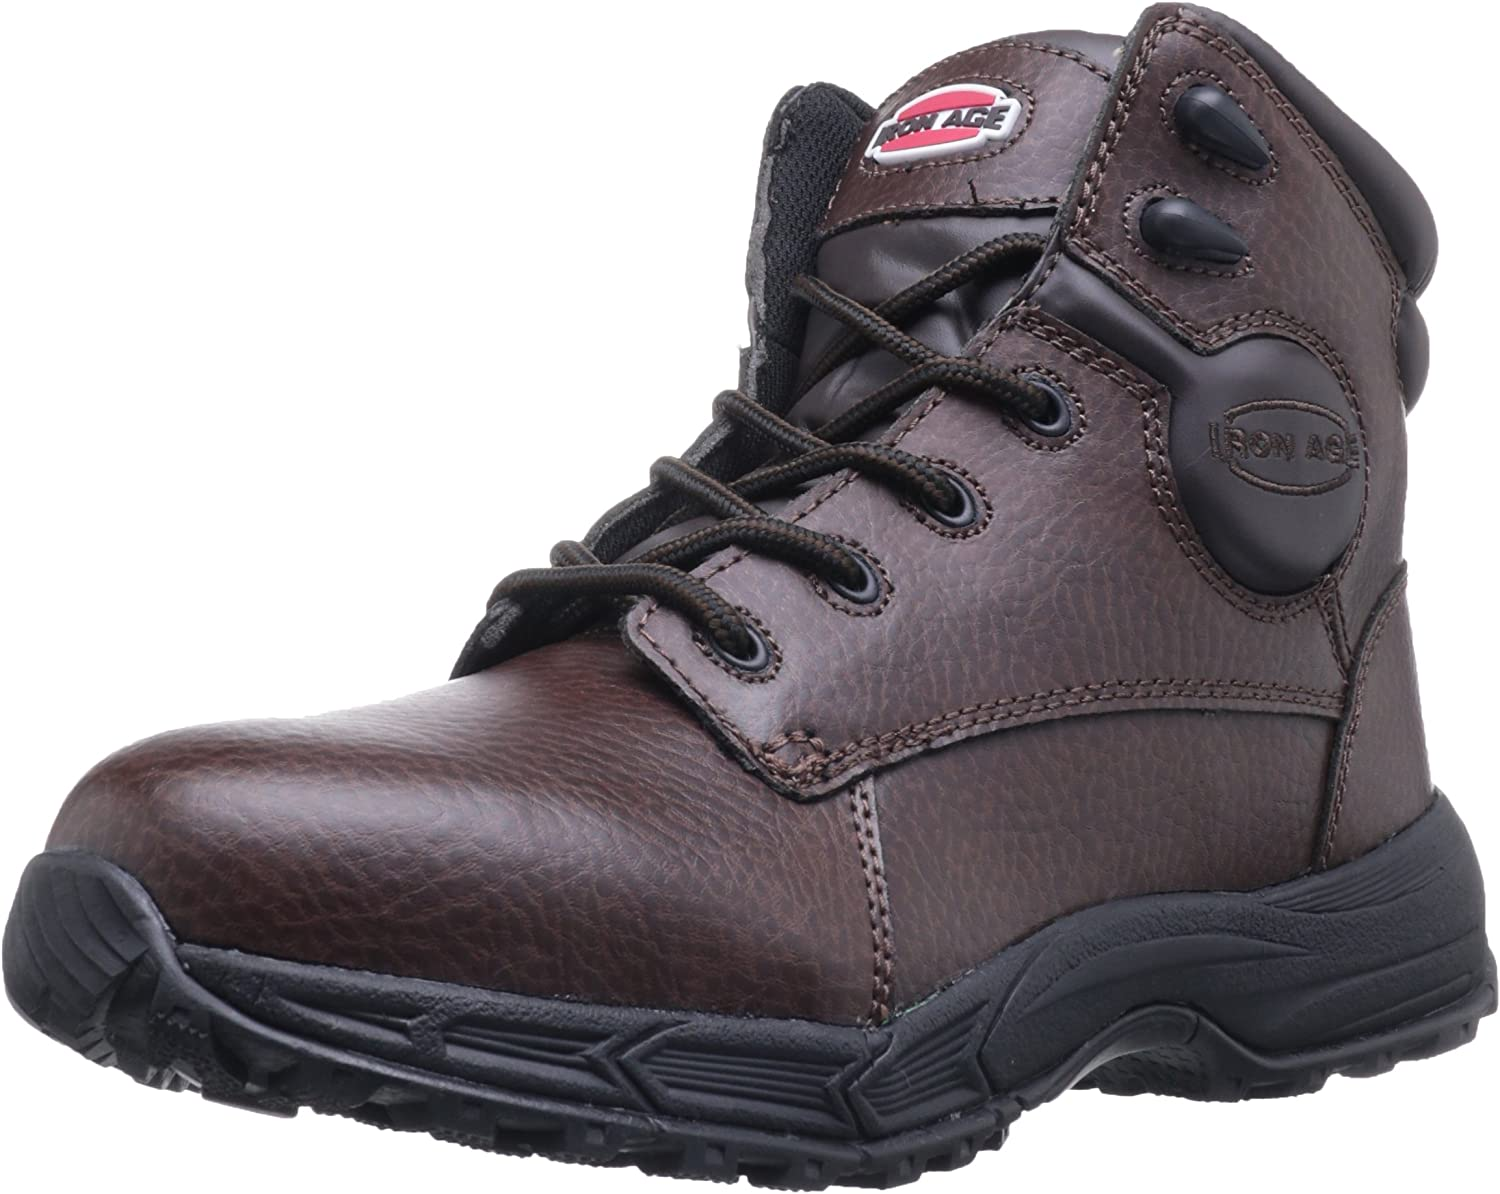 Iron Age shop Men's Ia5150 Ground Max 65% OFF Sh Industrial Finish Construction